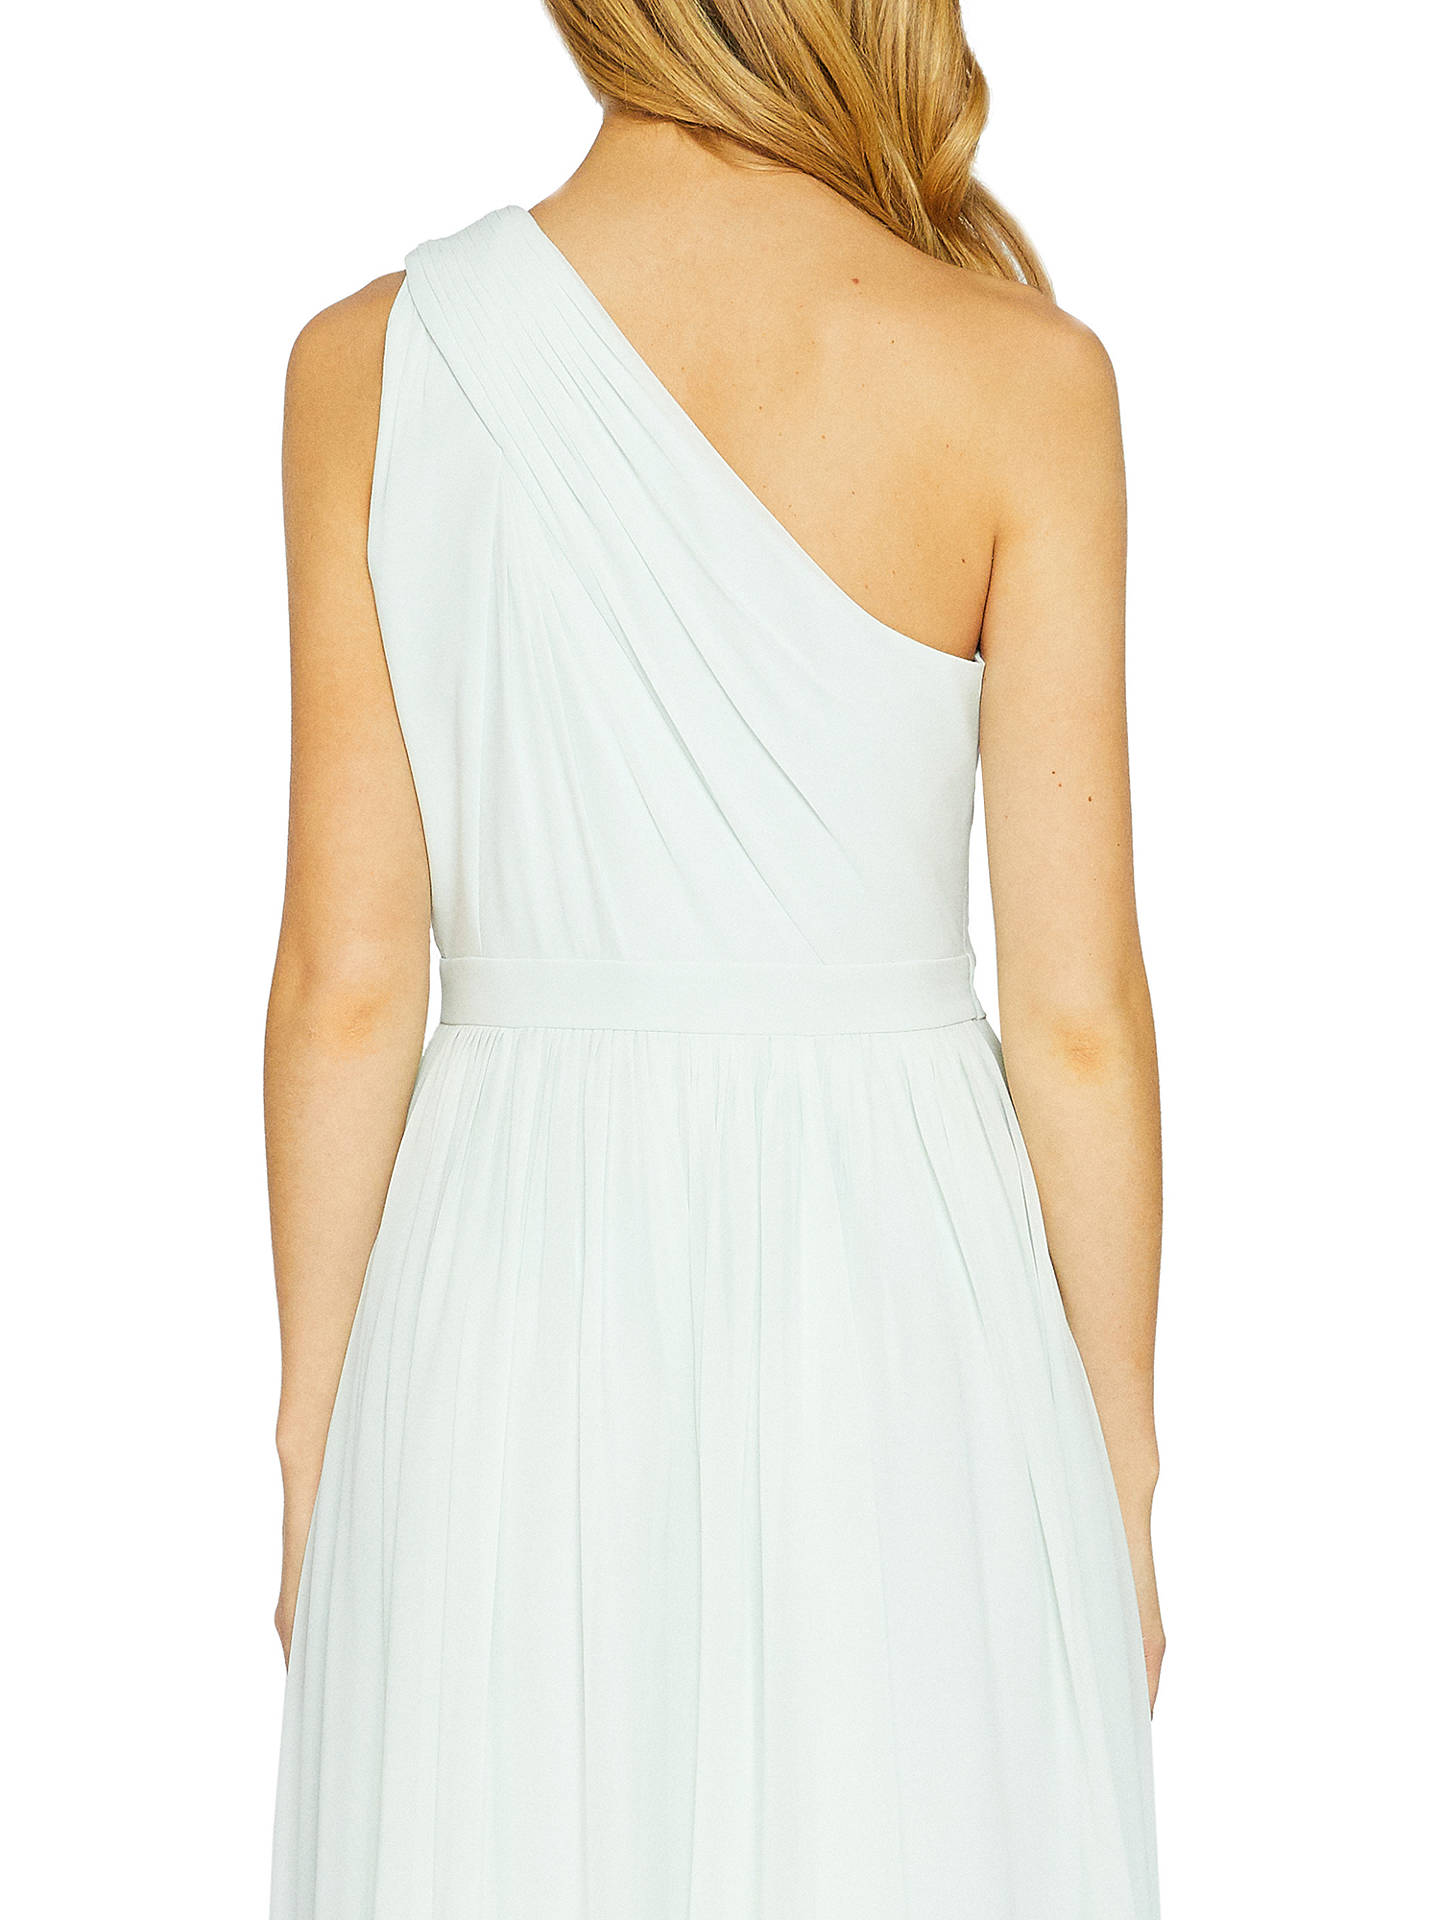 BuyTed Baker Petrra One Shoulder Maxi Dress, Mint, 0 Online at johnlewis.com